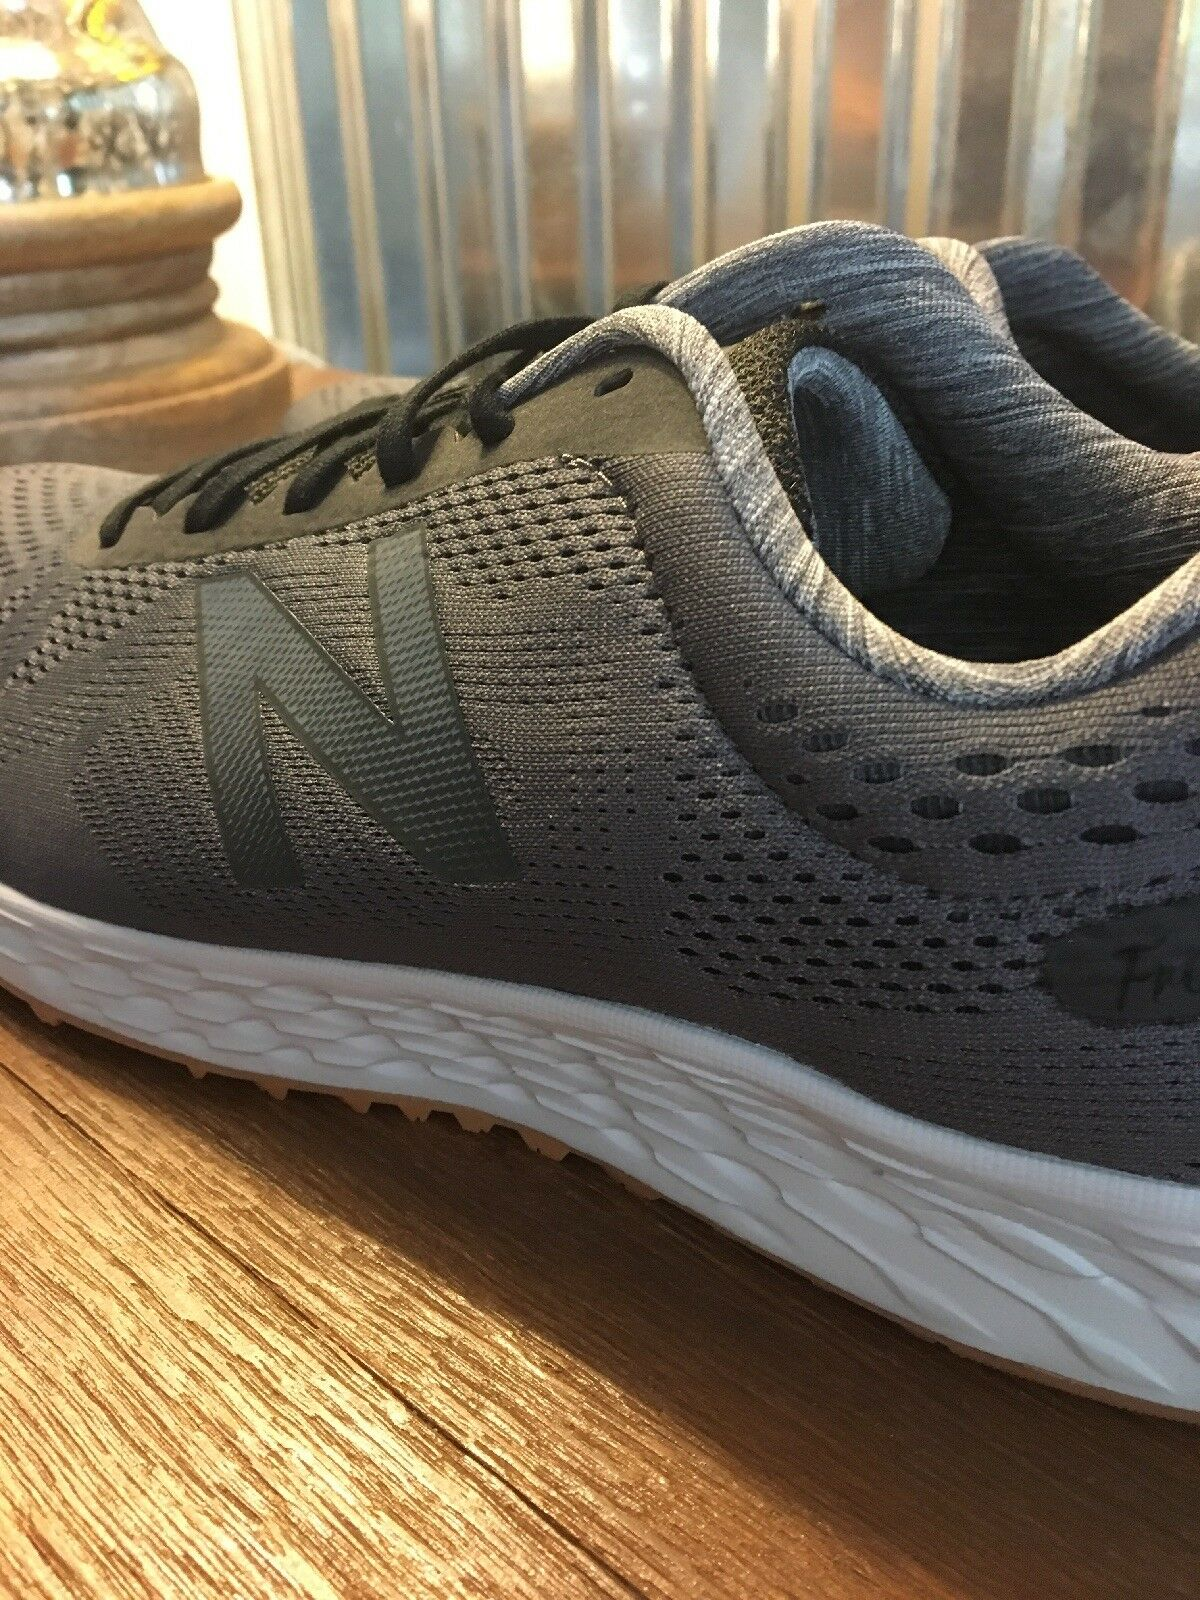 2018 New Balance Running Shoes Men's Size New With Box Free Shipping